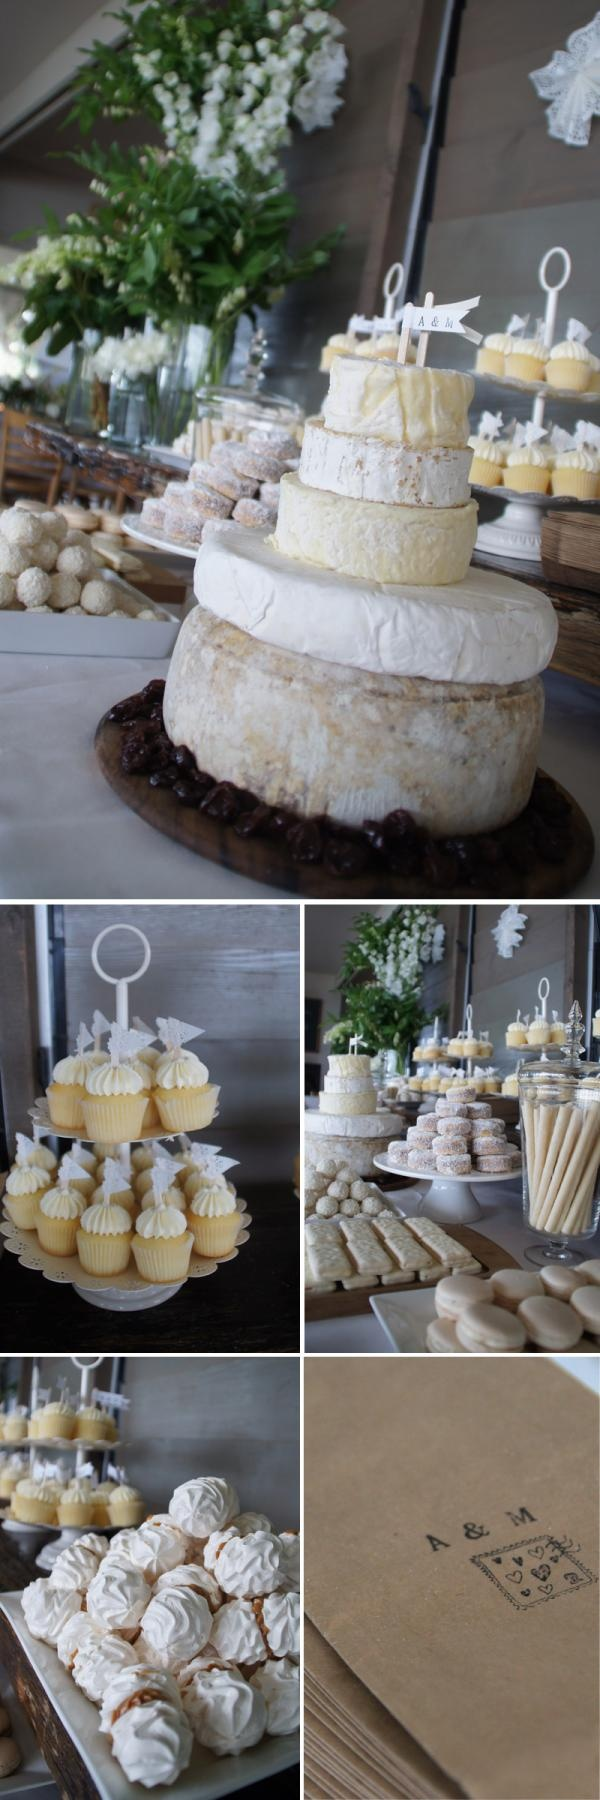 OMG - Now that's a 'Cheese Cake' !!  I have to do this !   The Style Co. - You are amazing !